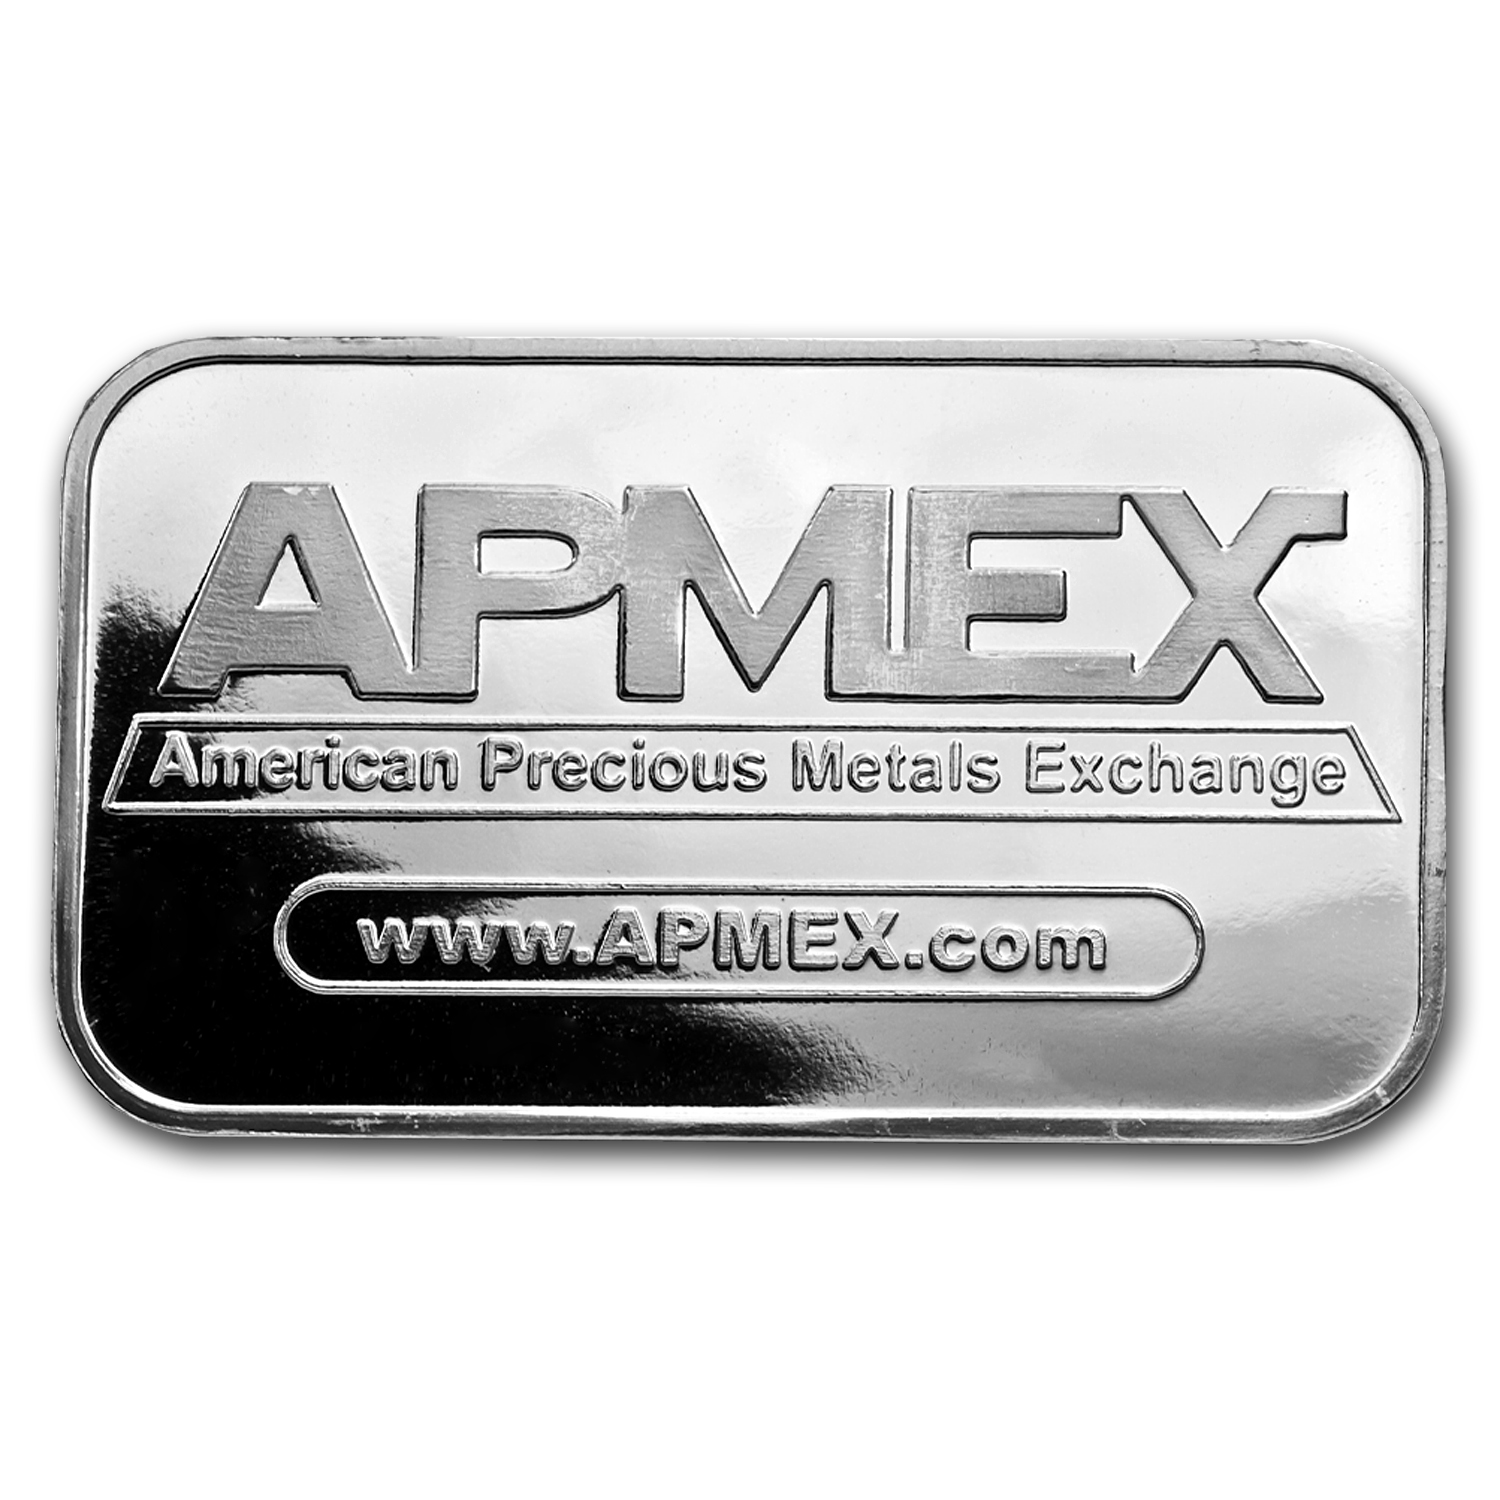 1 oz Silver Bars - APMEX (Original Design)